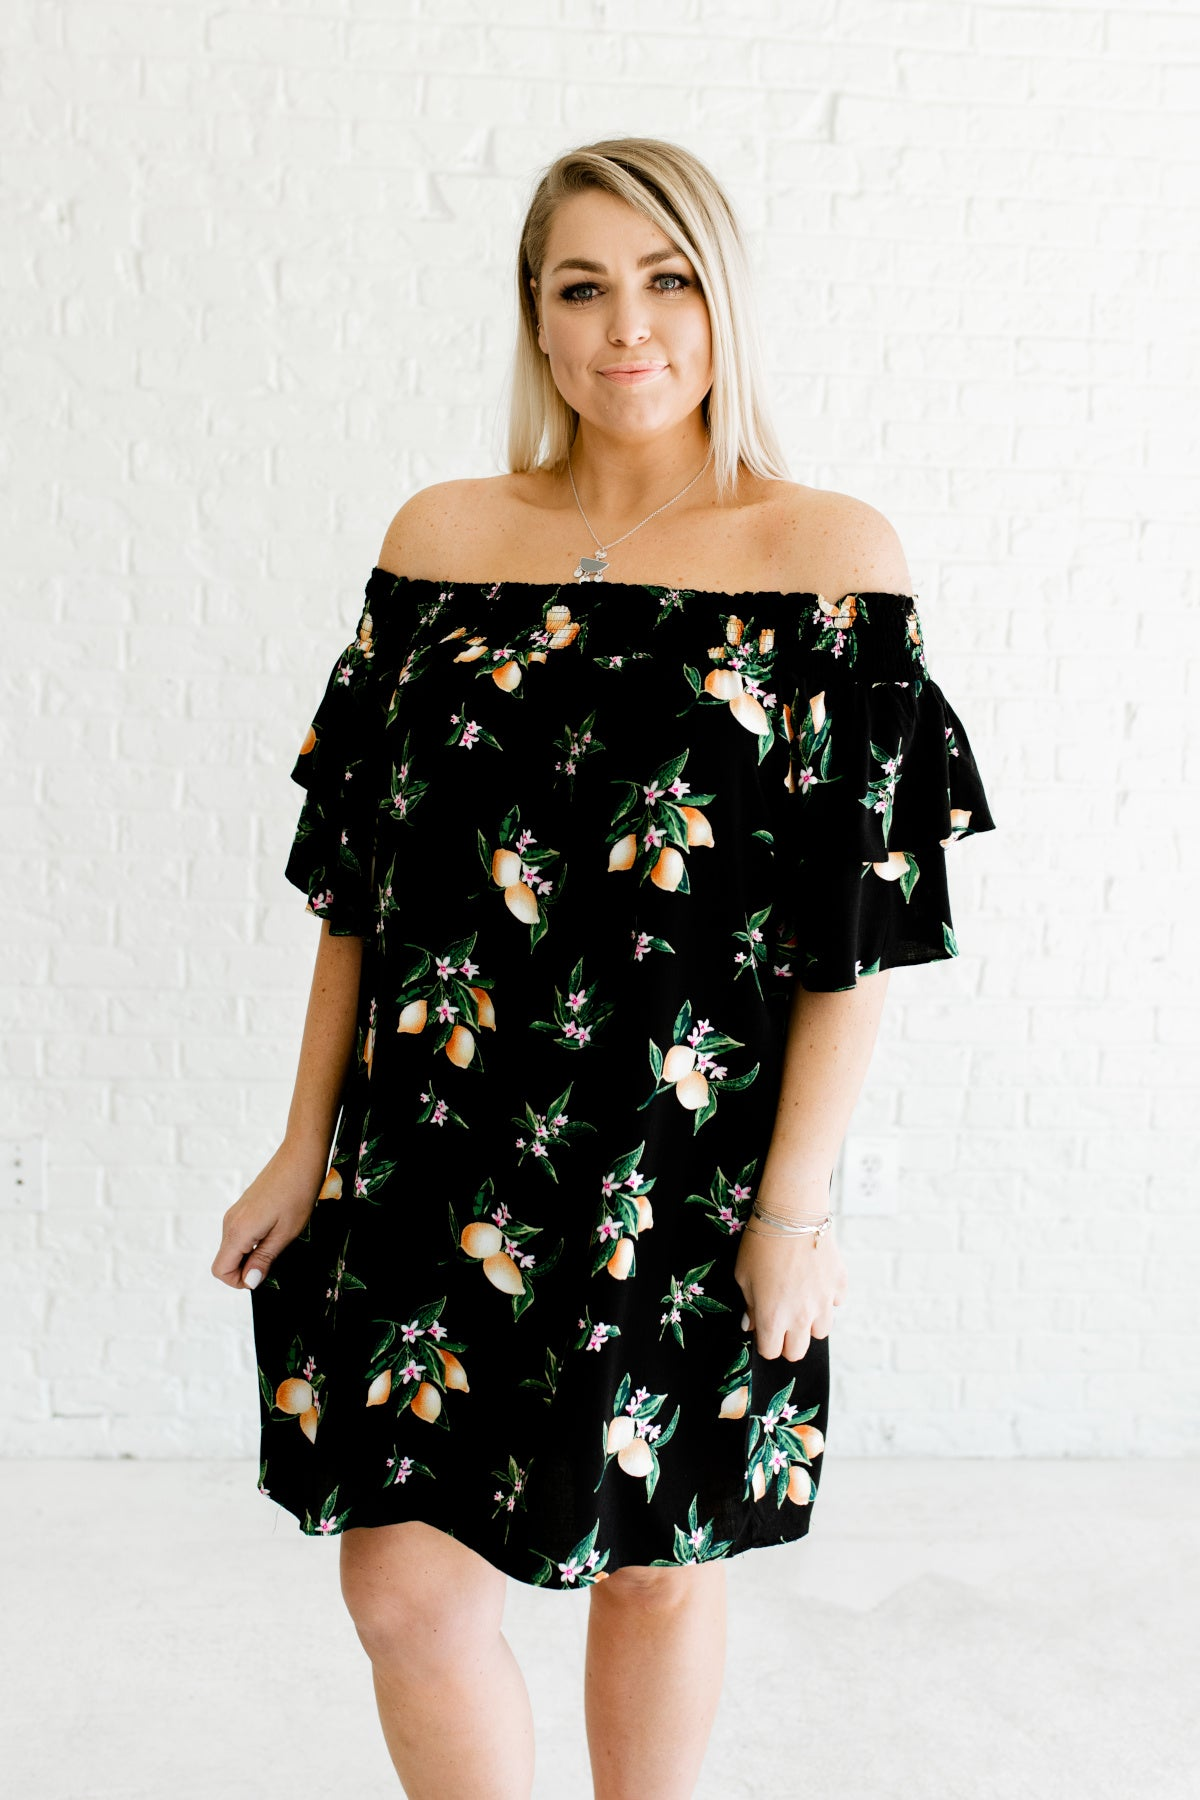 Lemon Blossom Black Off Shoulder Mini Dress